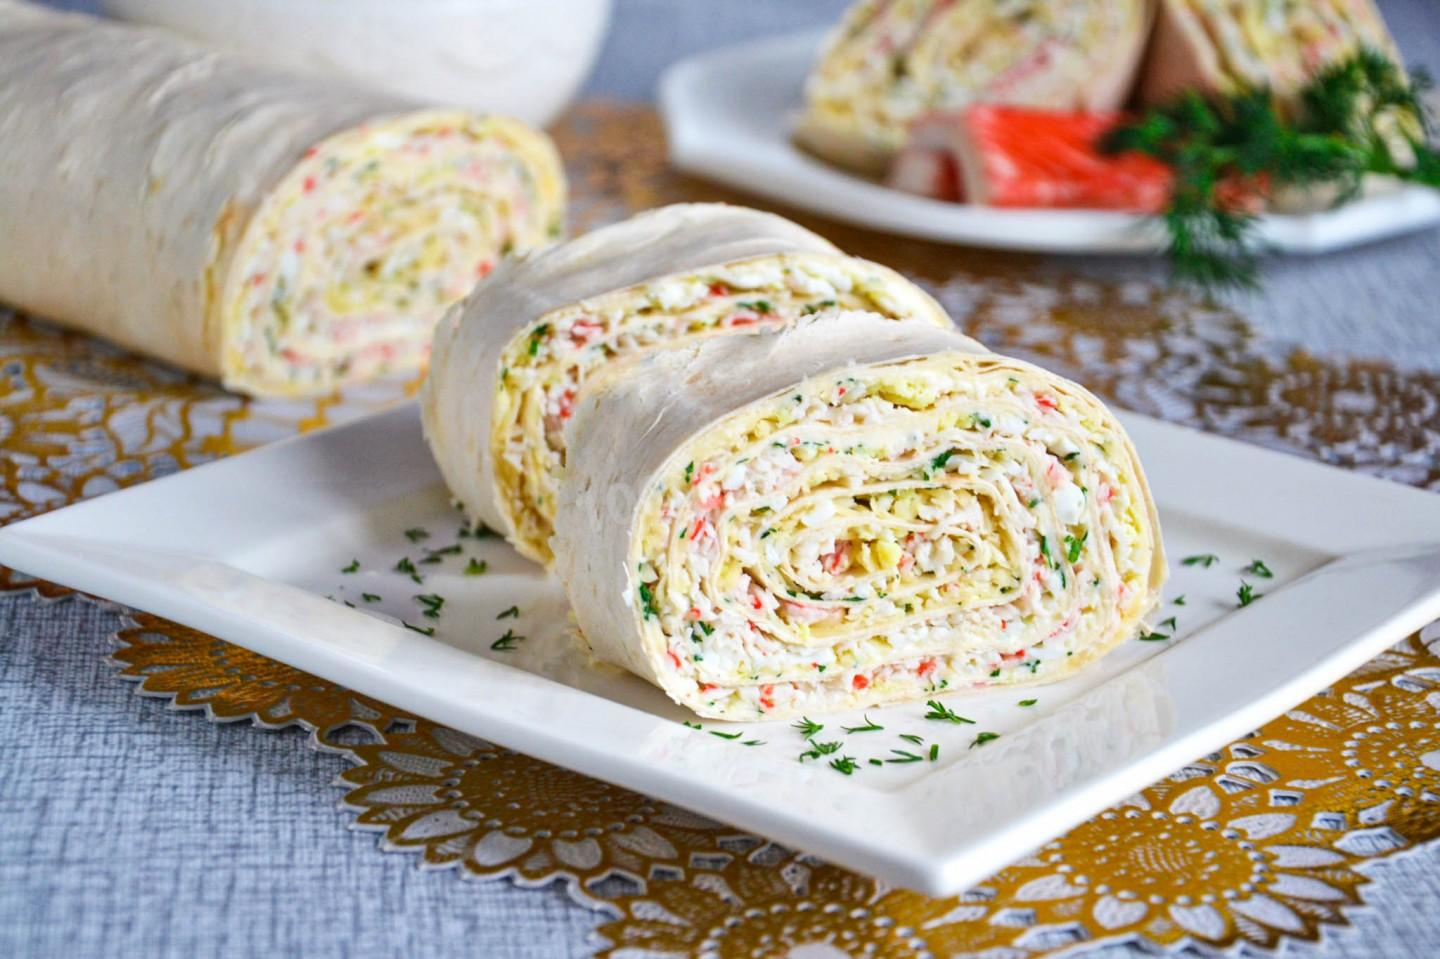 LAVASH ROLL WITH CRAB STICKS, CHEESE AND EGG